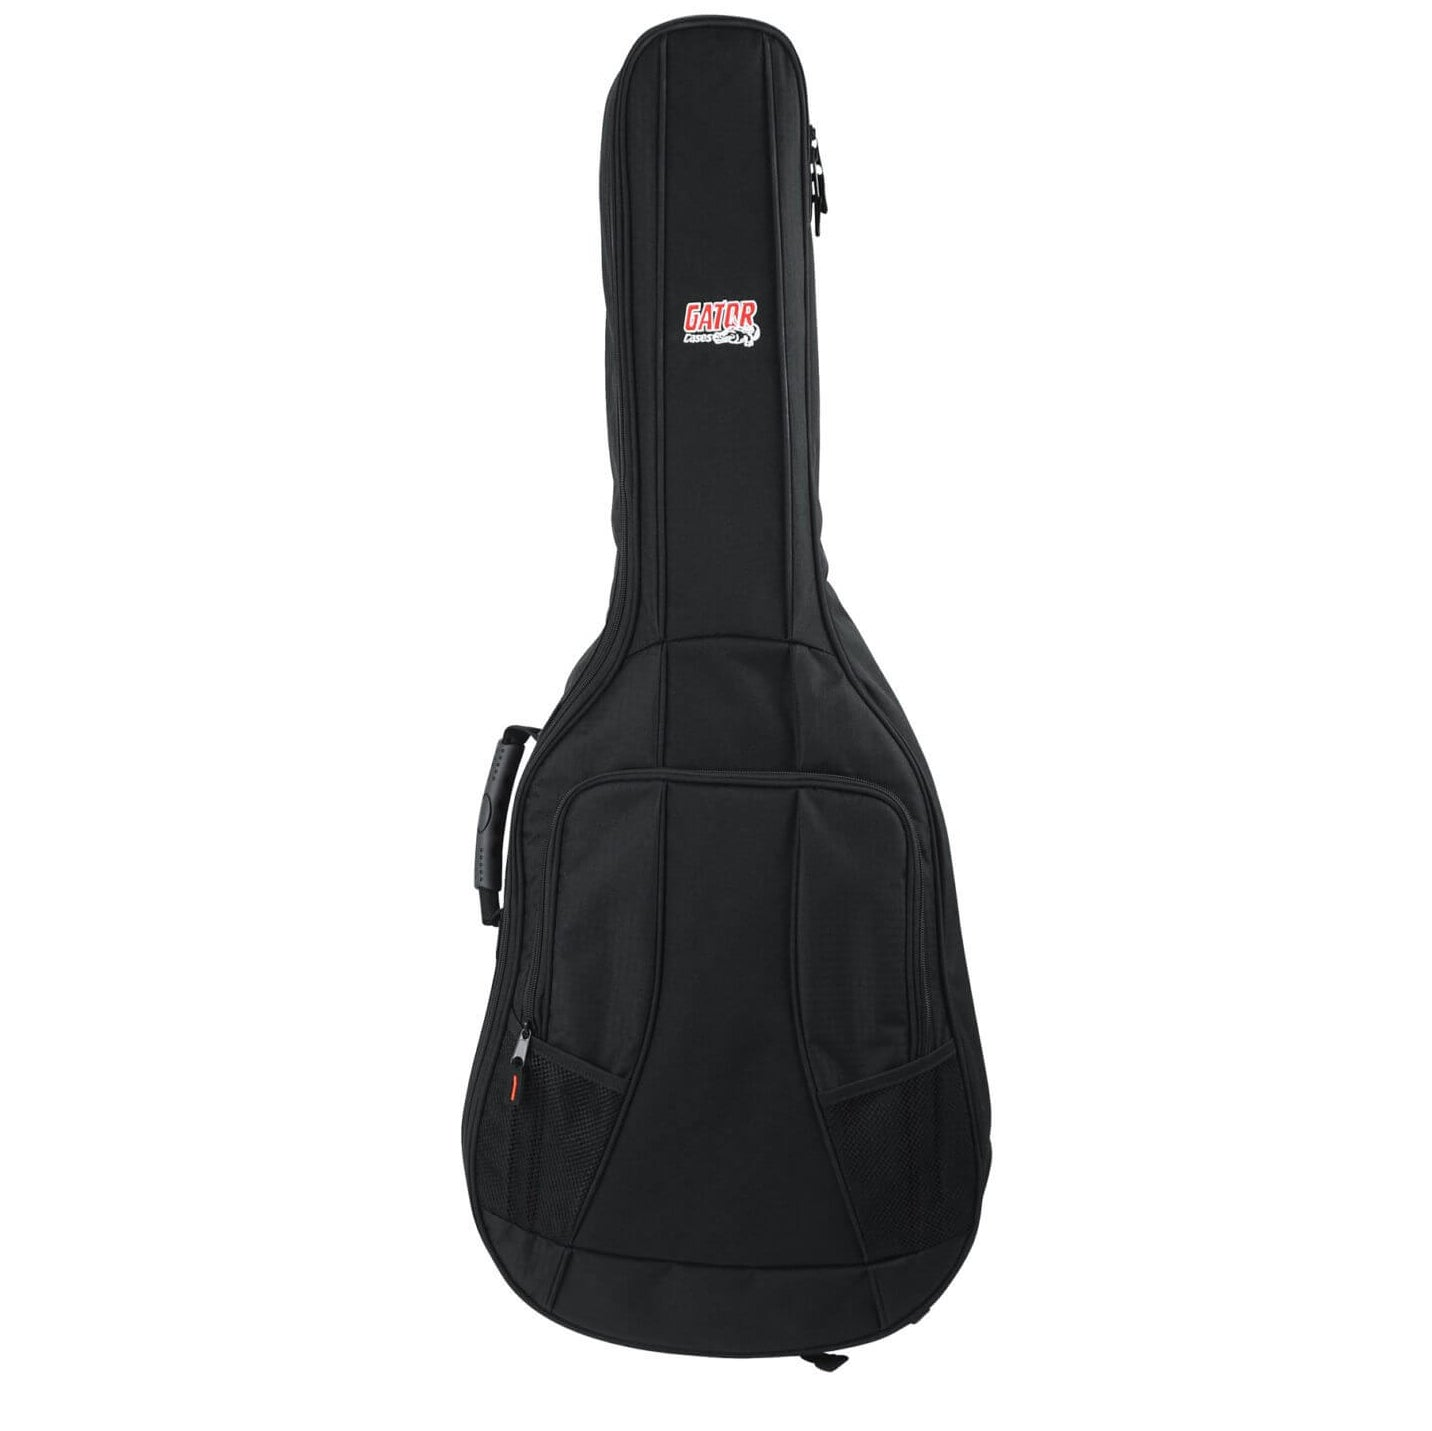 Shop online for Gator 4G Series Classical Guitar Gig Bag today. Now available for purchase from Midlothian Music of Orland Park, Illinois, USA